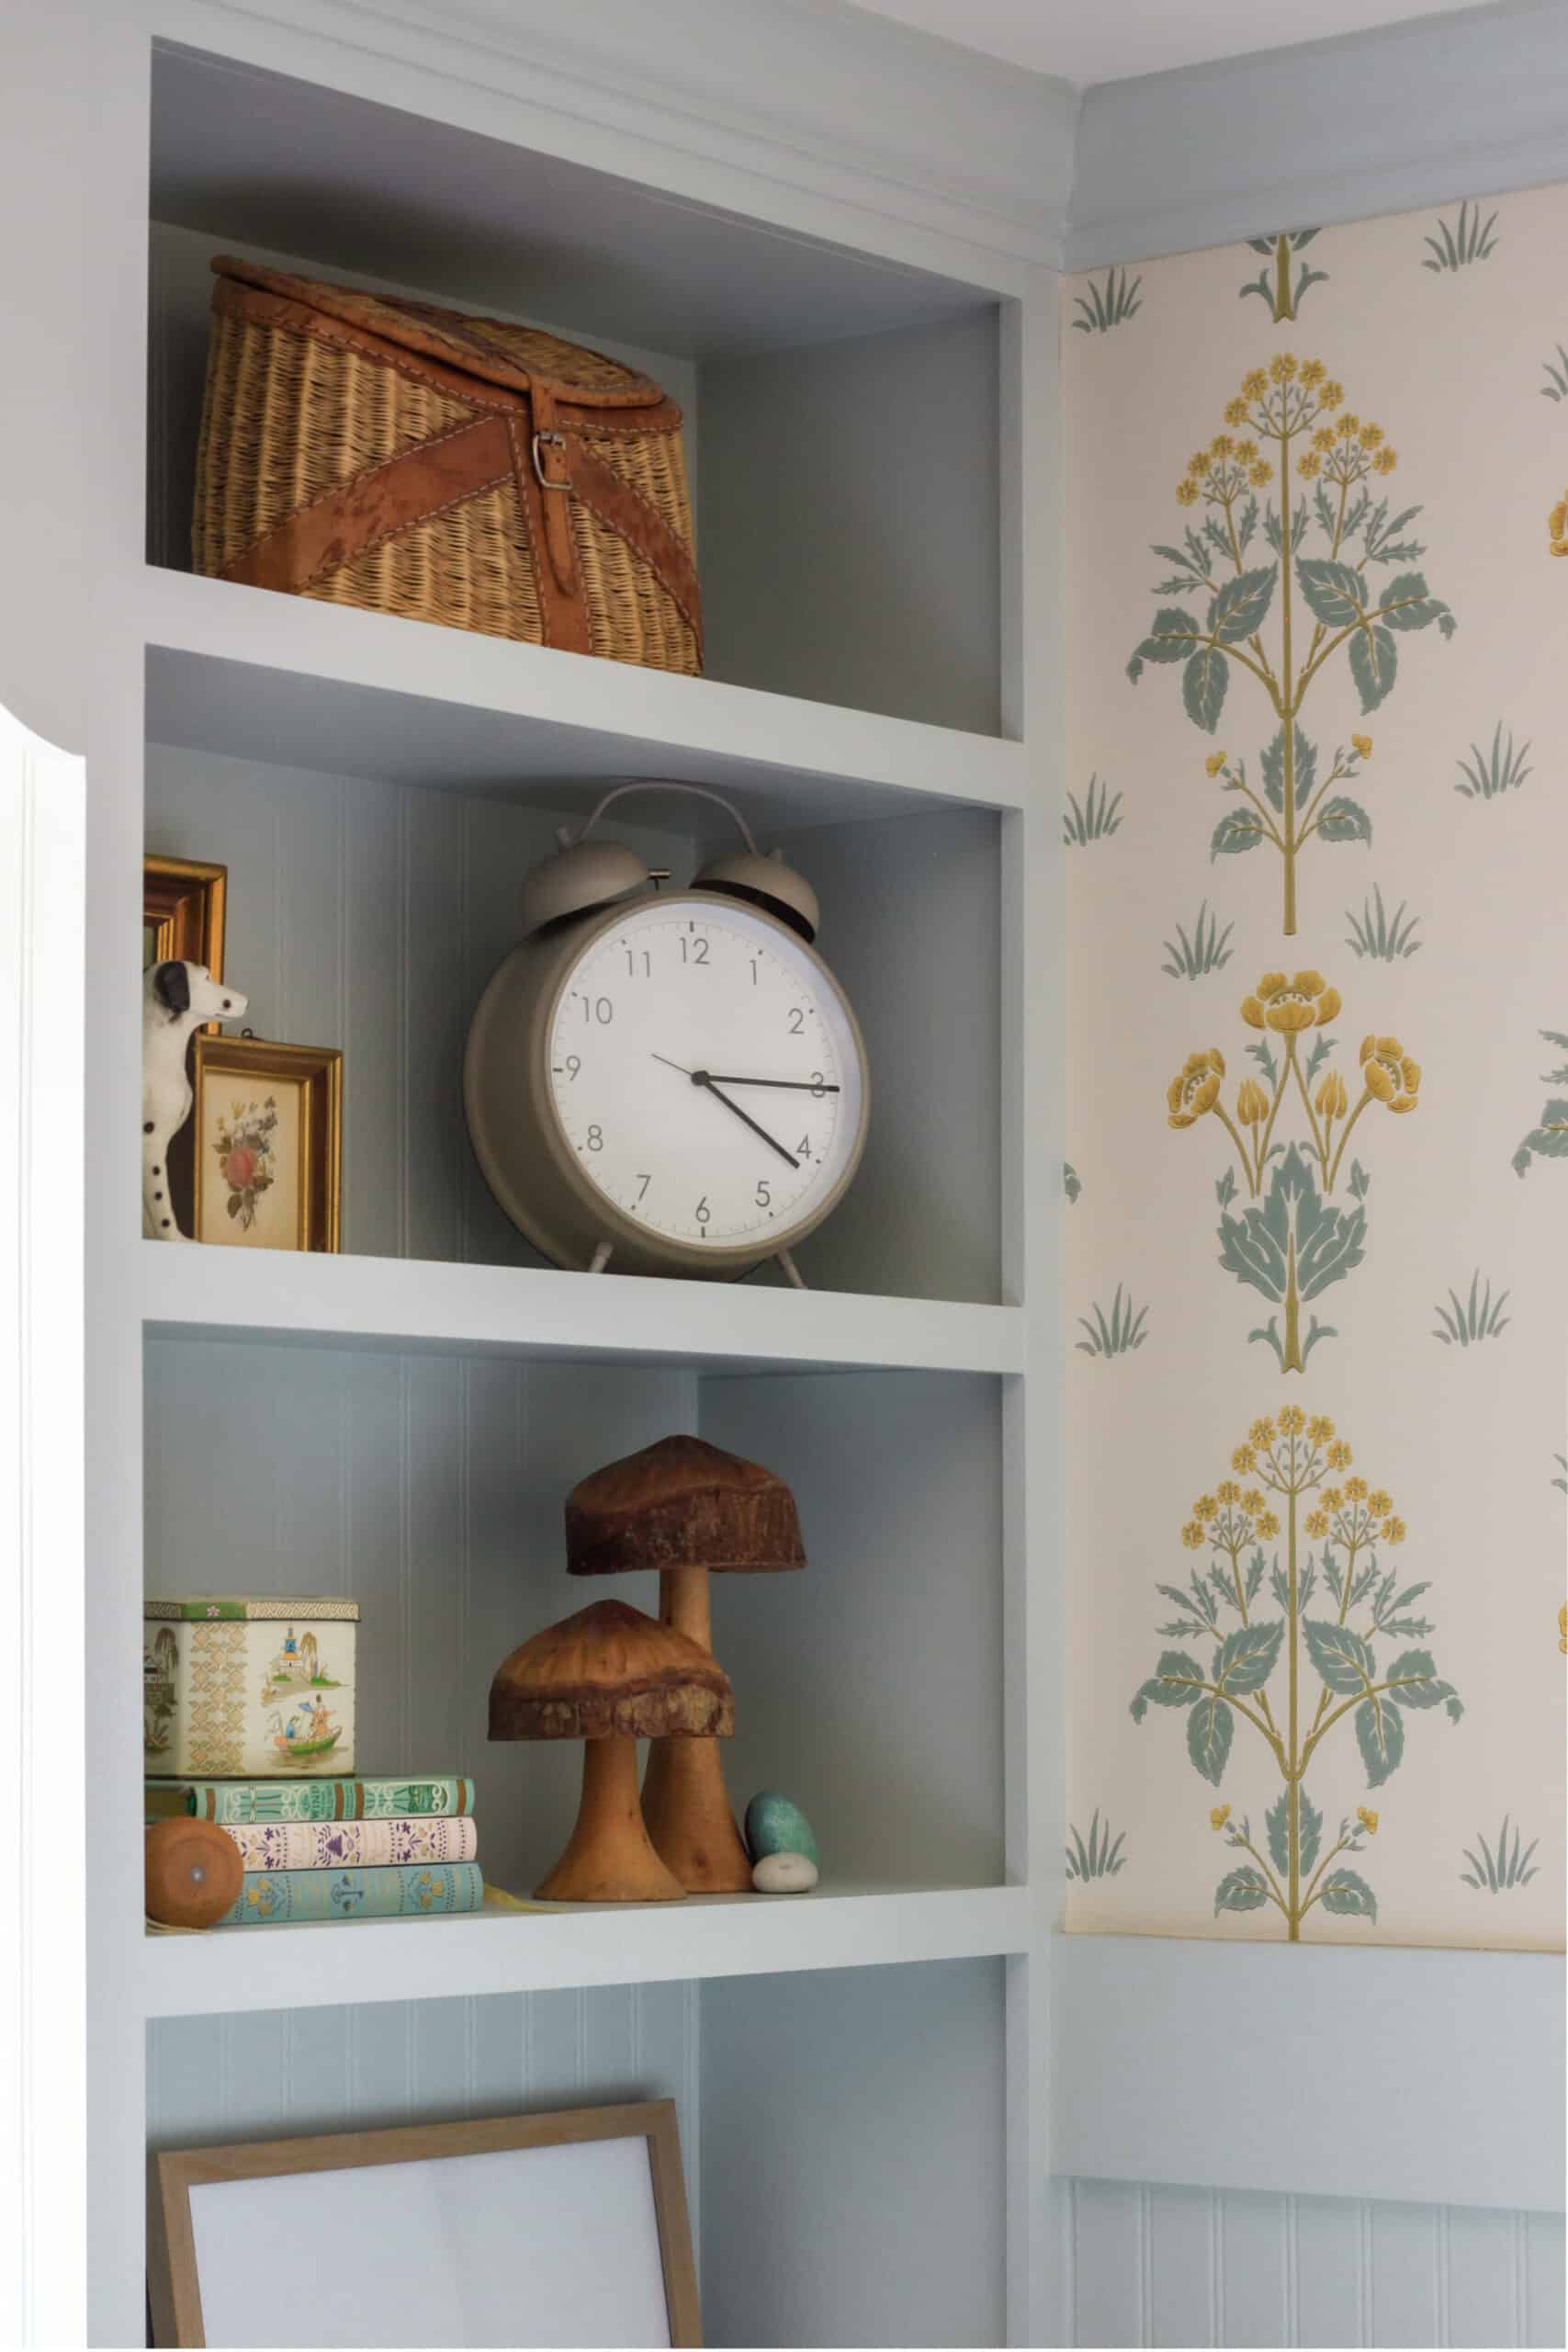 blue corner shelf with decor next to wallpapered wall